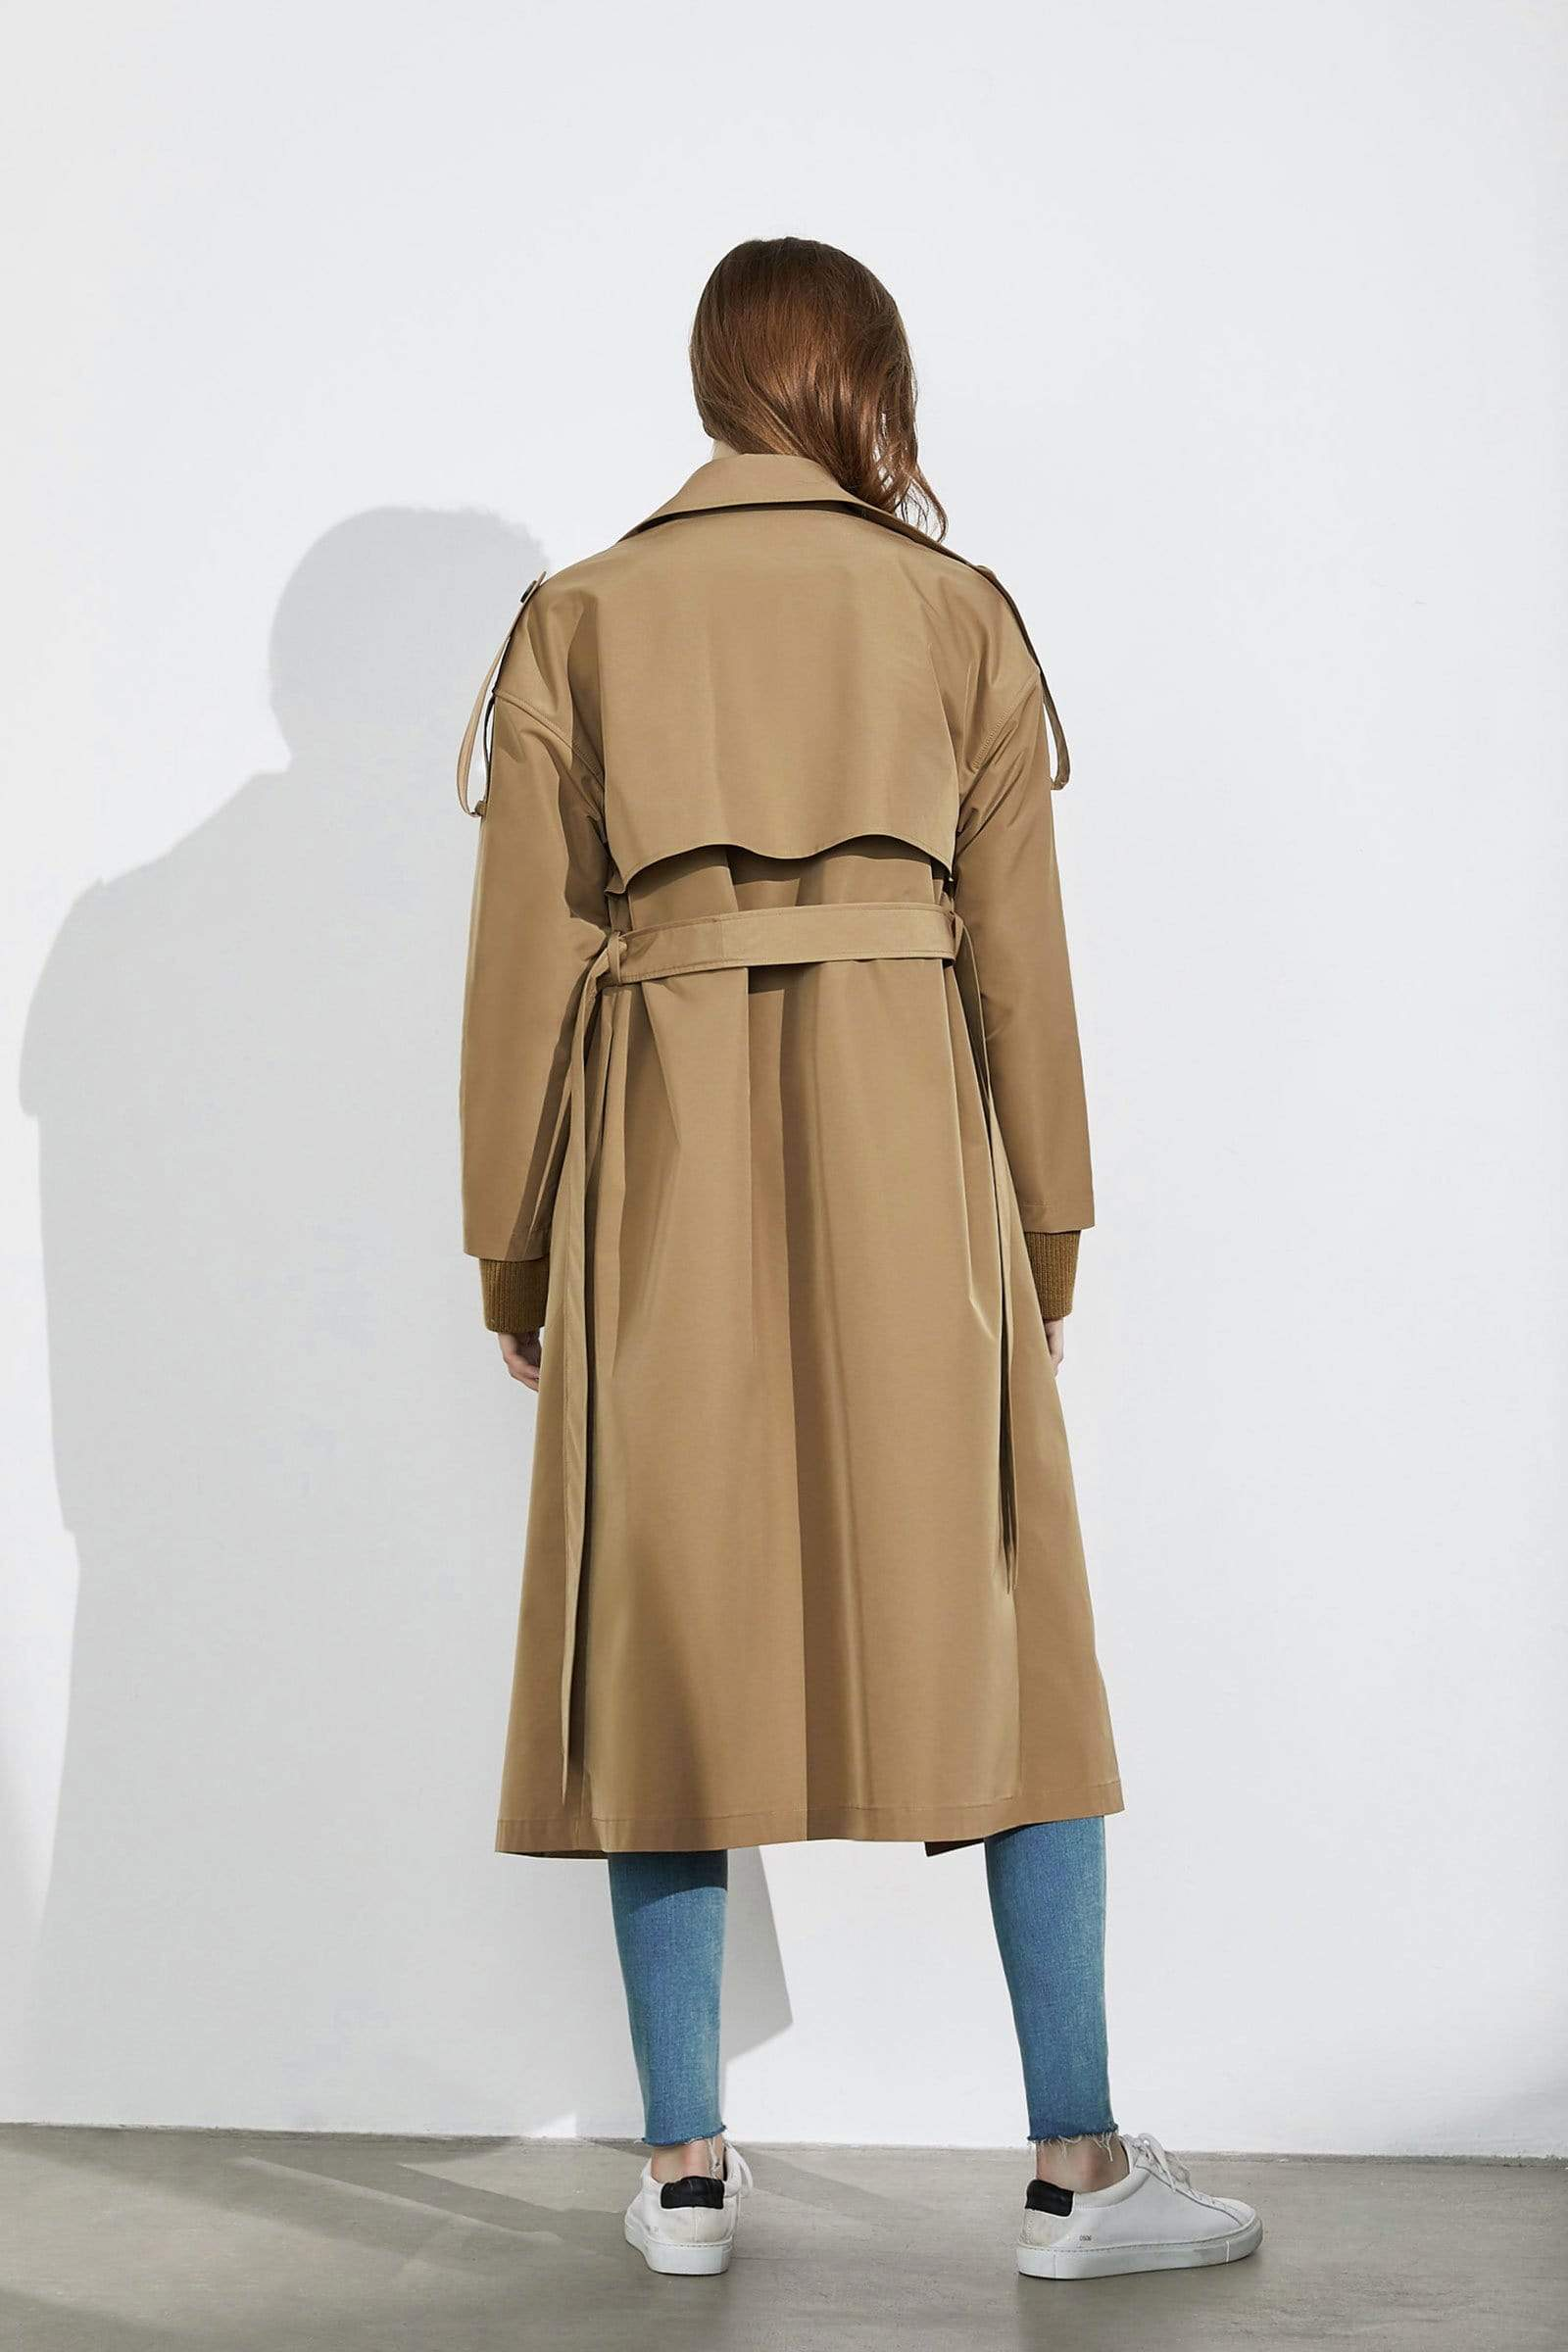 Lexor Camel Trench Coat